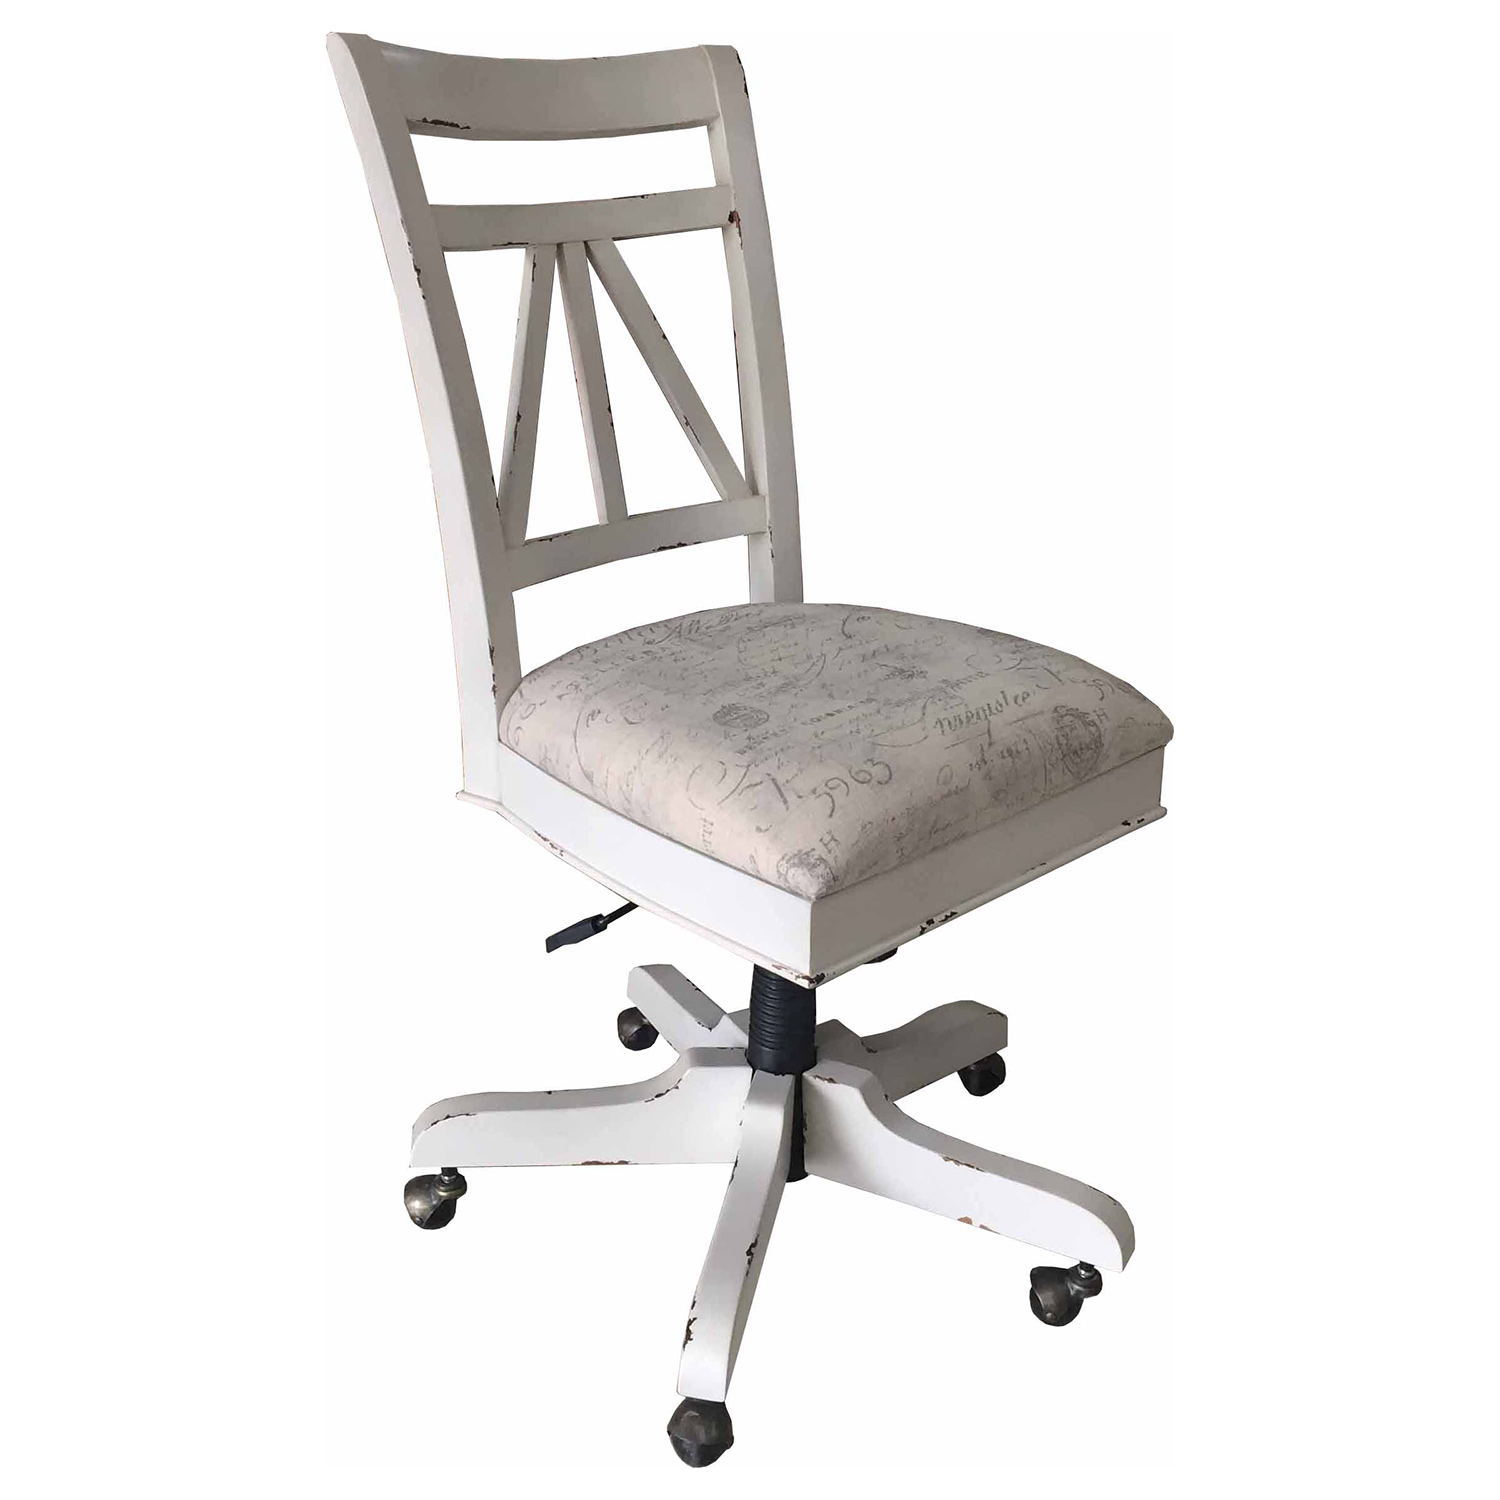 Wondrous Parker House Nantucket Armless Desk Chair In Vintage Burnished Artisanal White W Fabric Seat Gmtry Best Dining Table And Chair Ideas Images Gmtryco